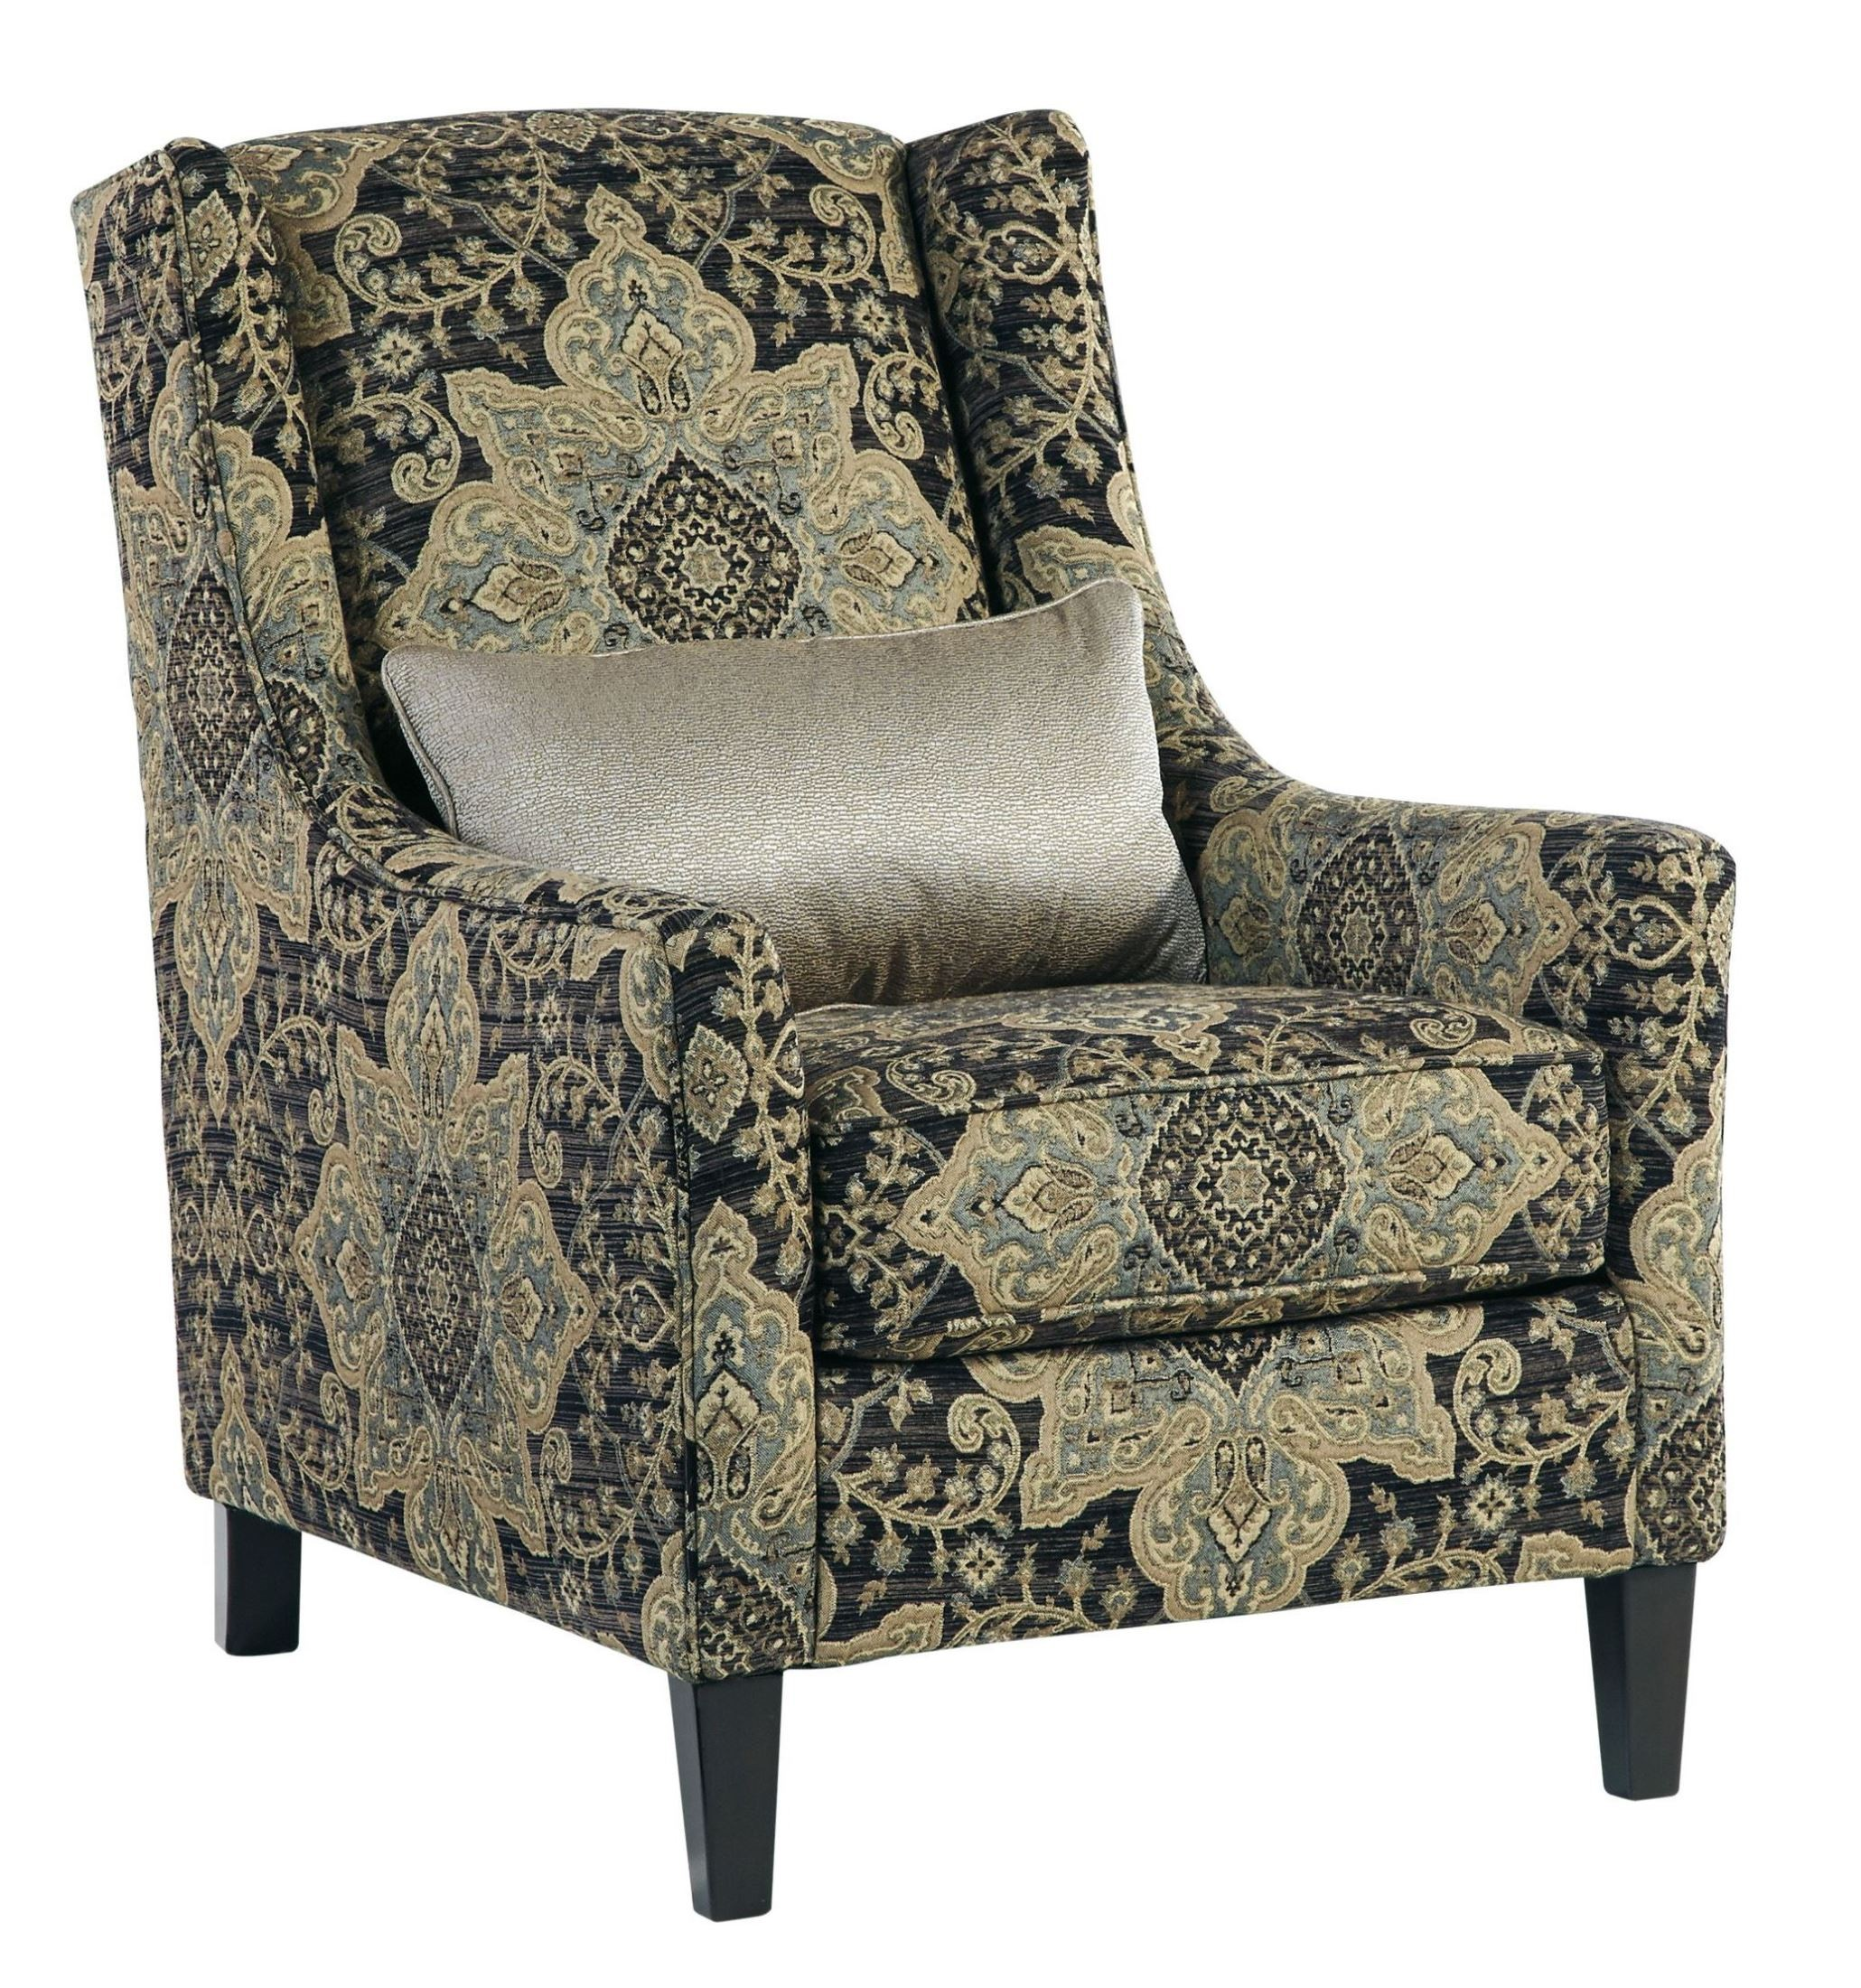 Ashley Furniture Accent Chair Hartigan Onyx Accent Chair From Ashley 6250121 Coleman